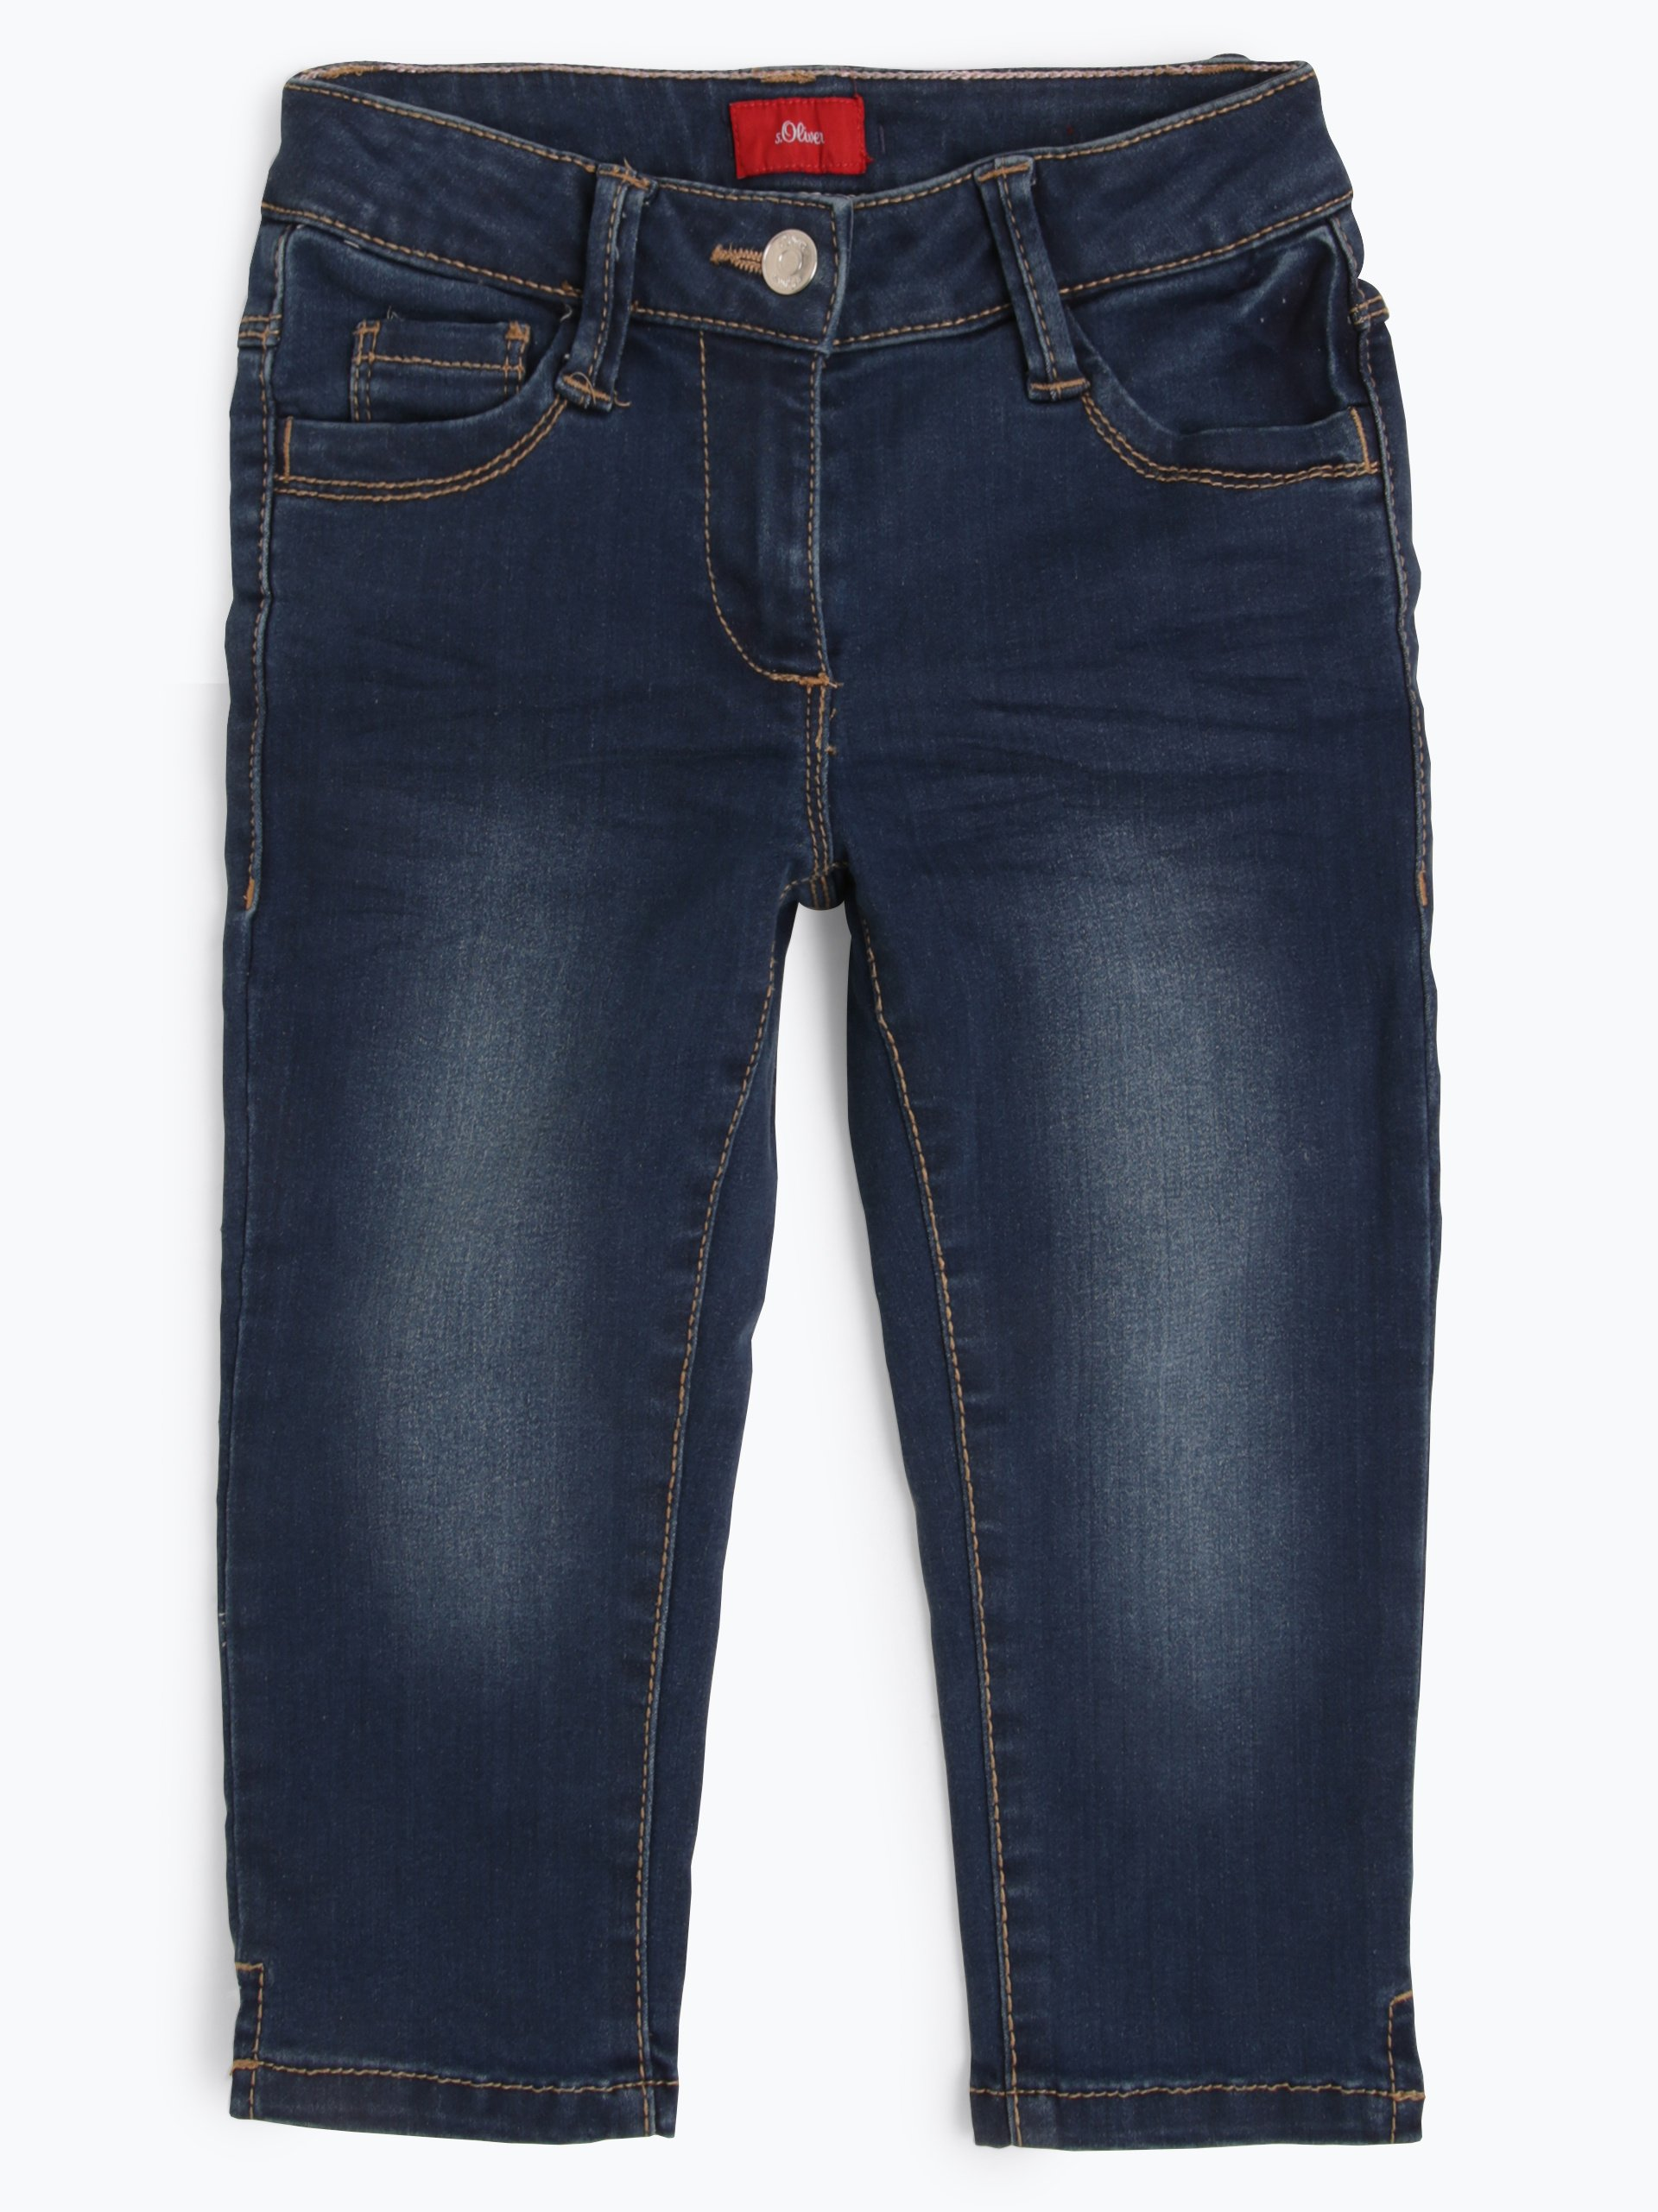 s.Oliver Casual Mädchen Jeans